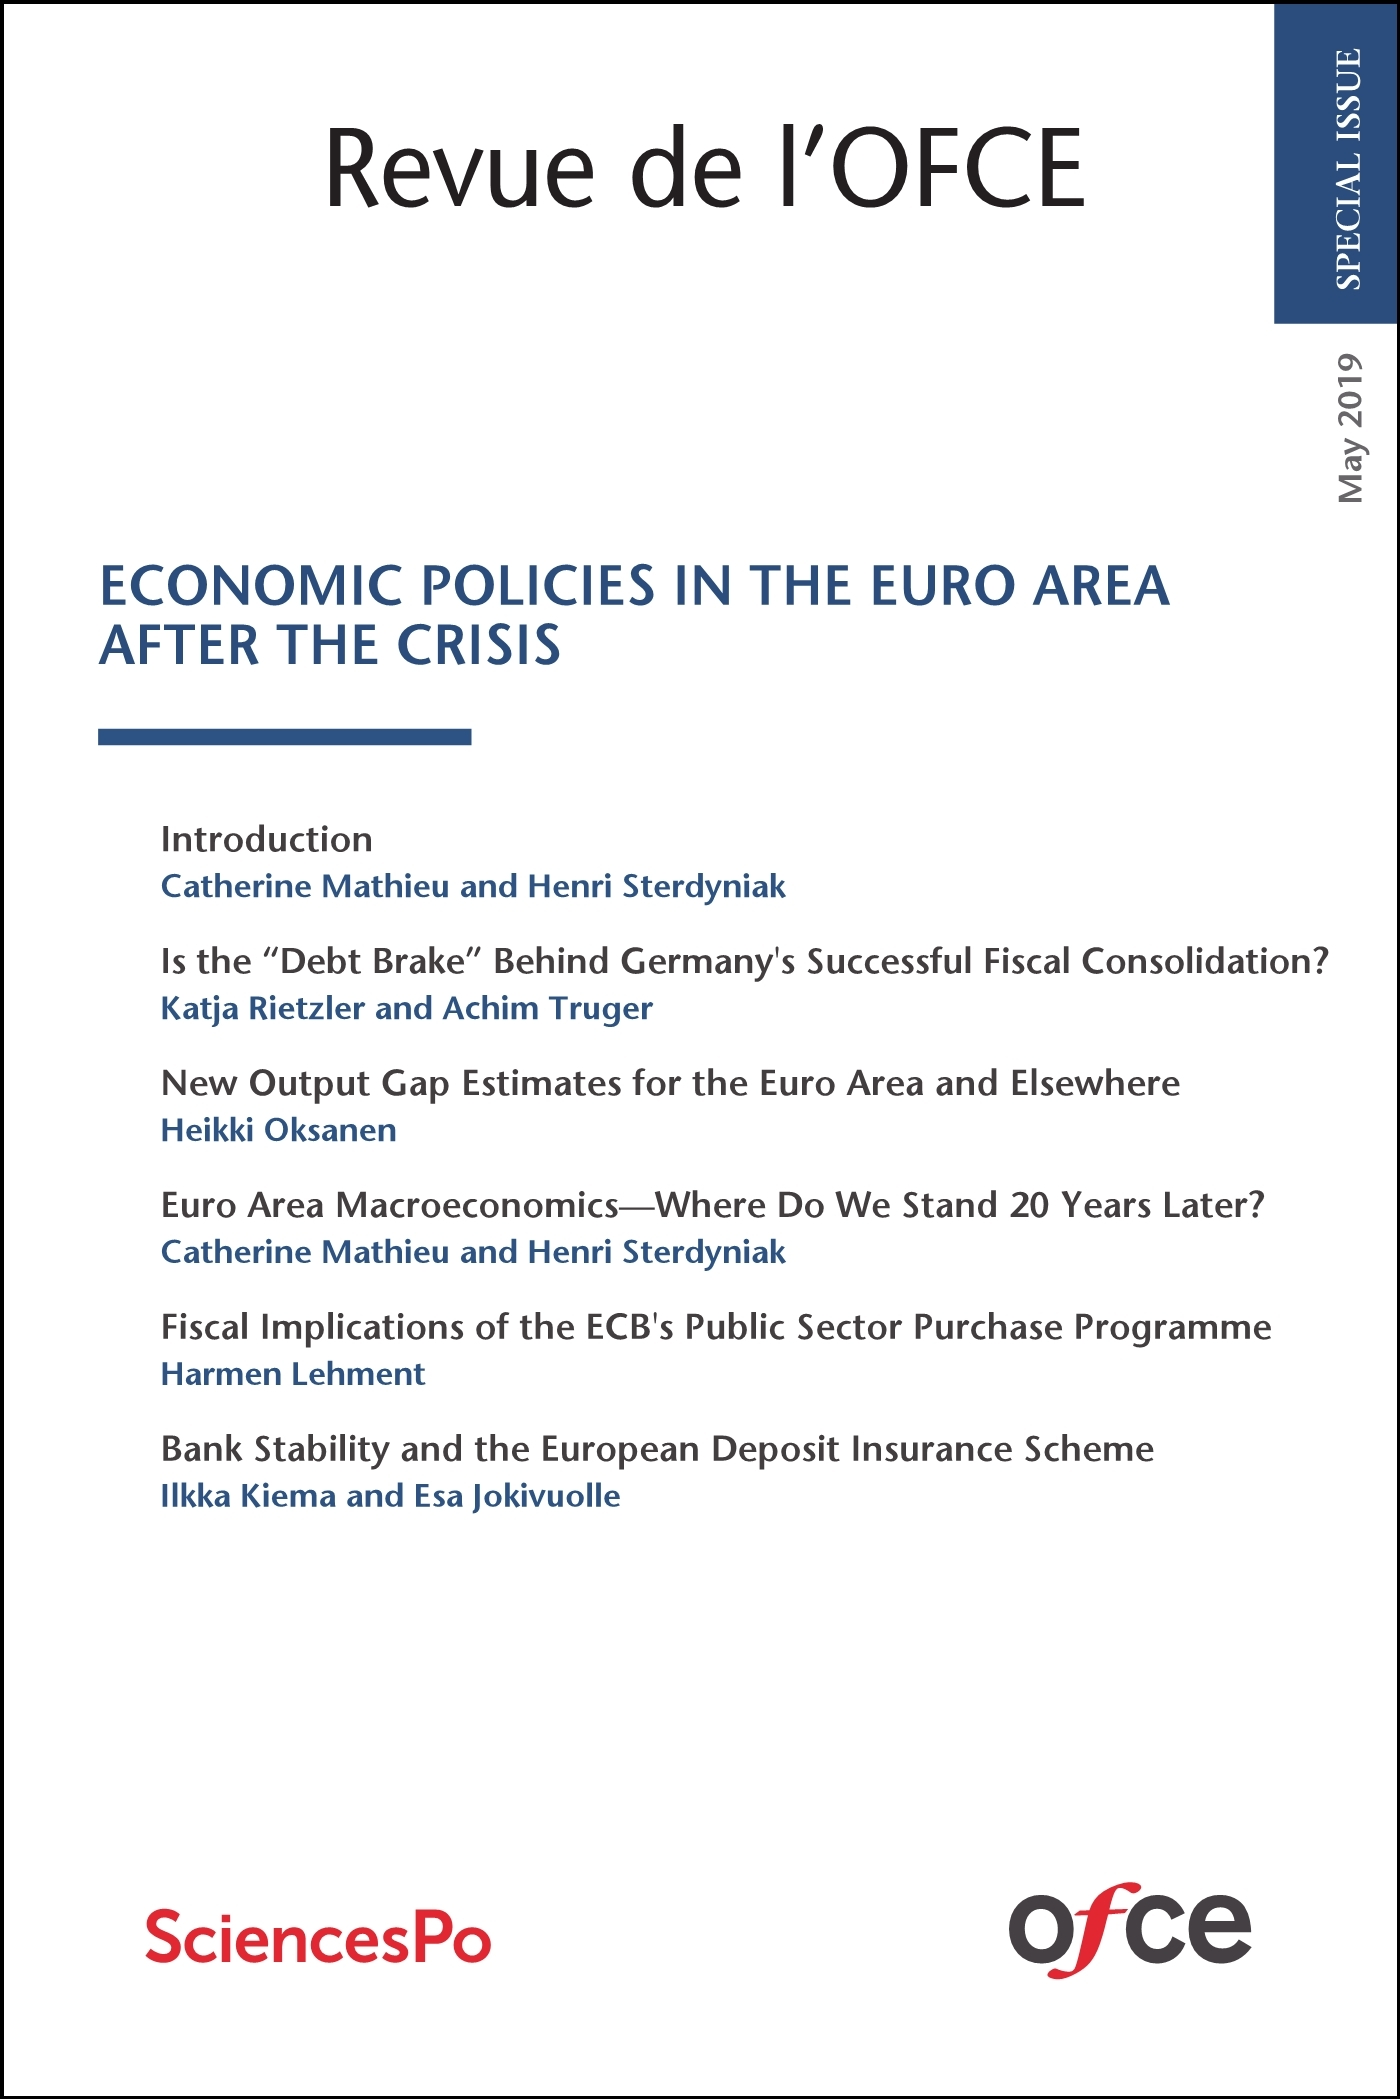 REVUE DE L'OFCE : SPECIAL ISSUE - ECONOMIC POLICIES IN THE EURO AREA AFTER THE CRISIS